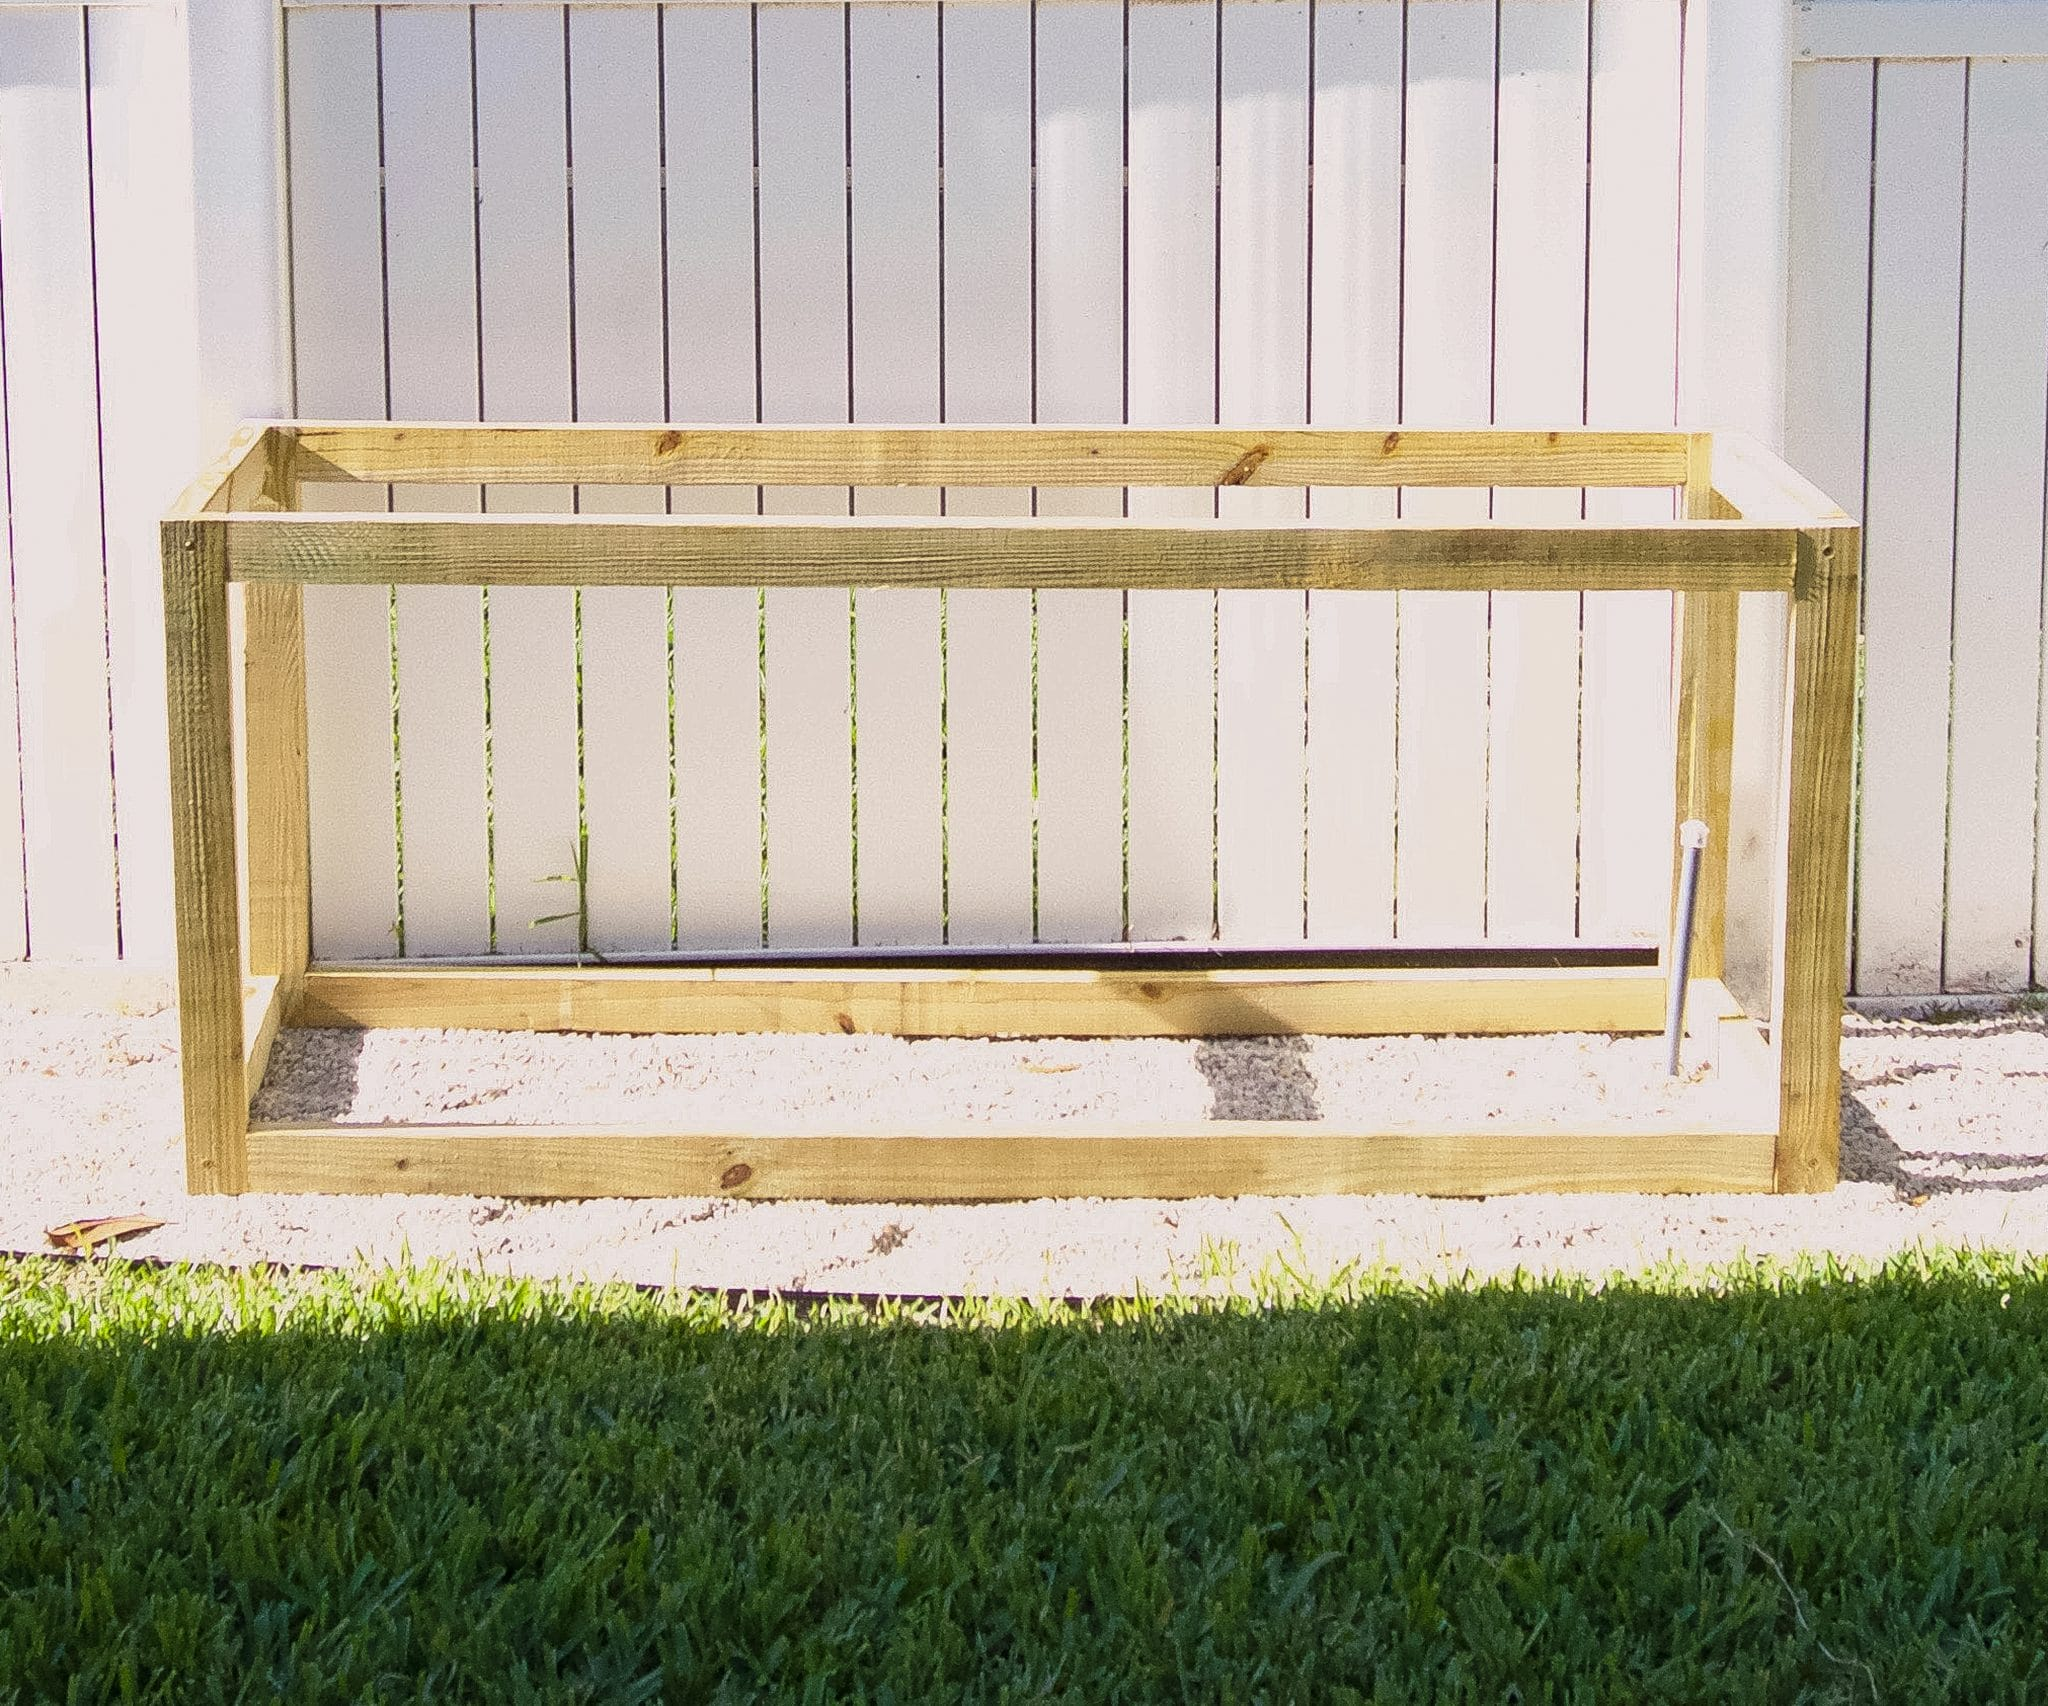 ryan chambers shares how to build a diy backyard cedar planter